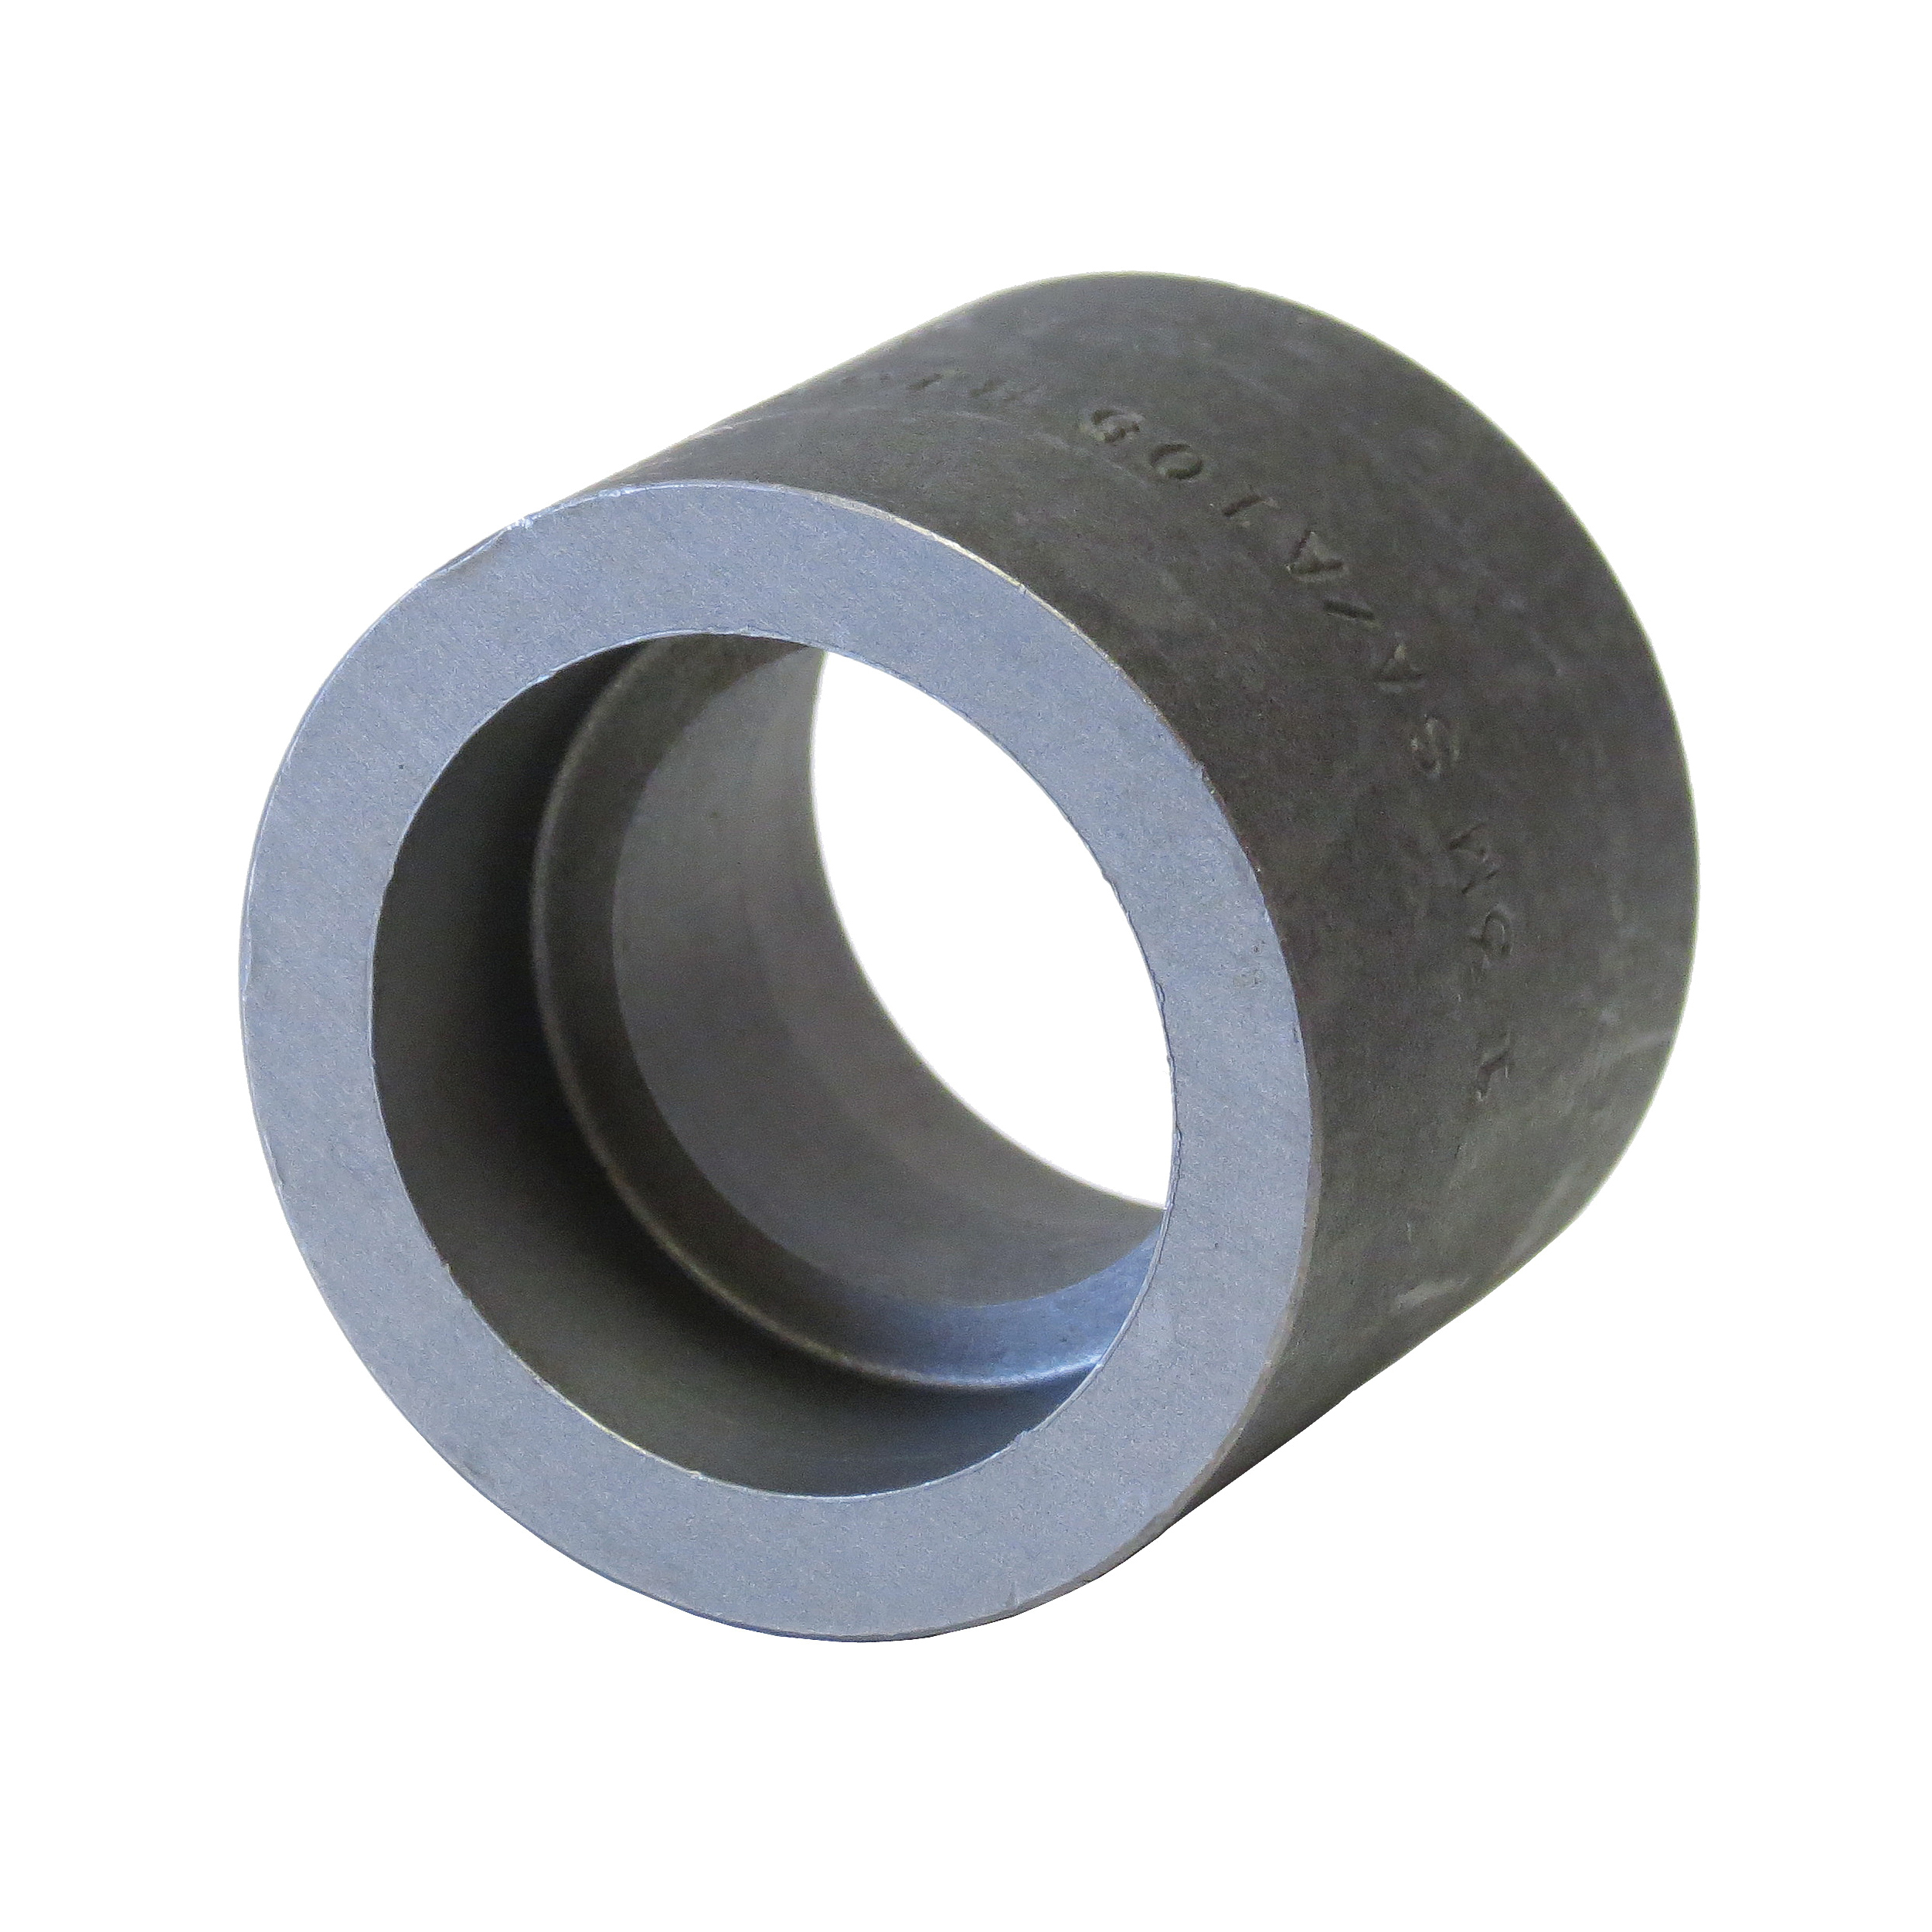 Anvil® 0362061400 FIG 2154 Pipe Coupling, 1-1/2 in Nominal, Socket Welded End Style, 3000 lb, Steel, Black Oxide, Domestic